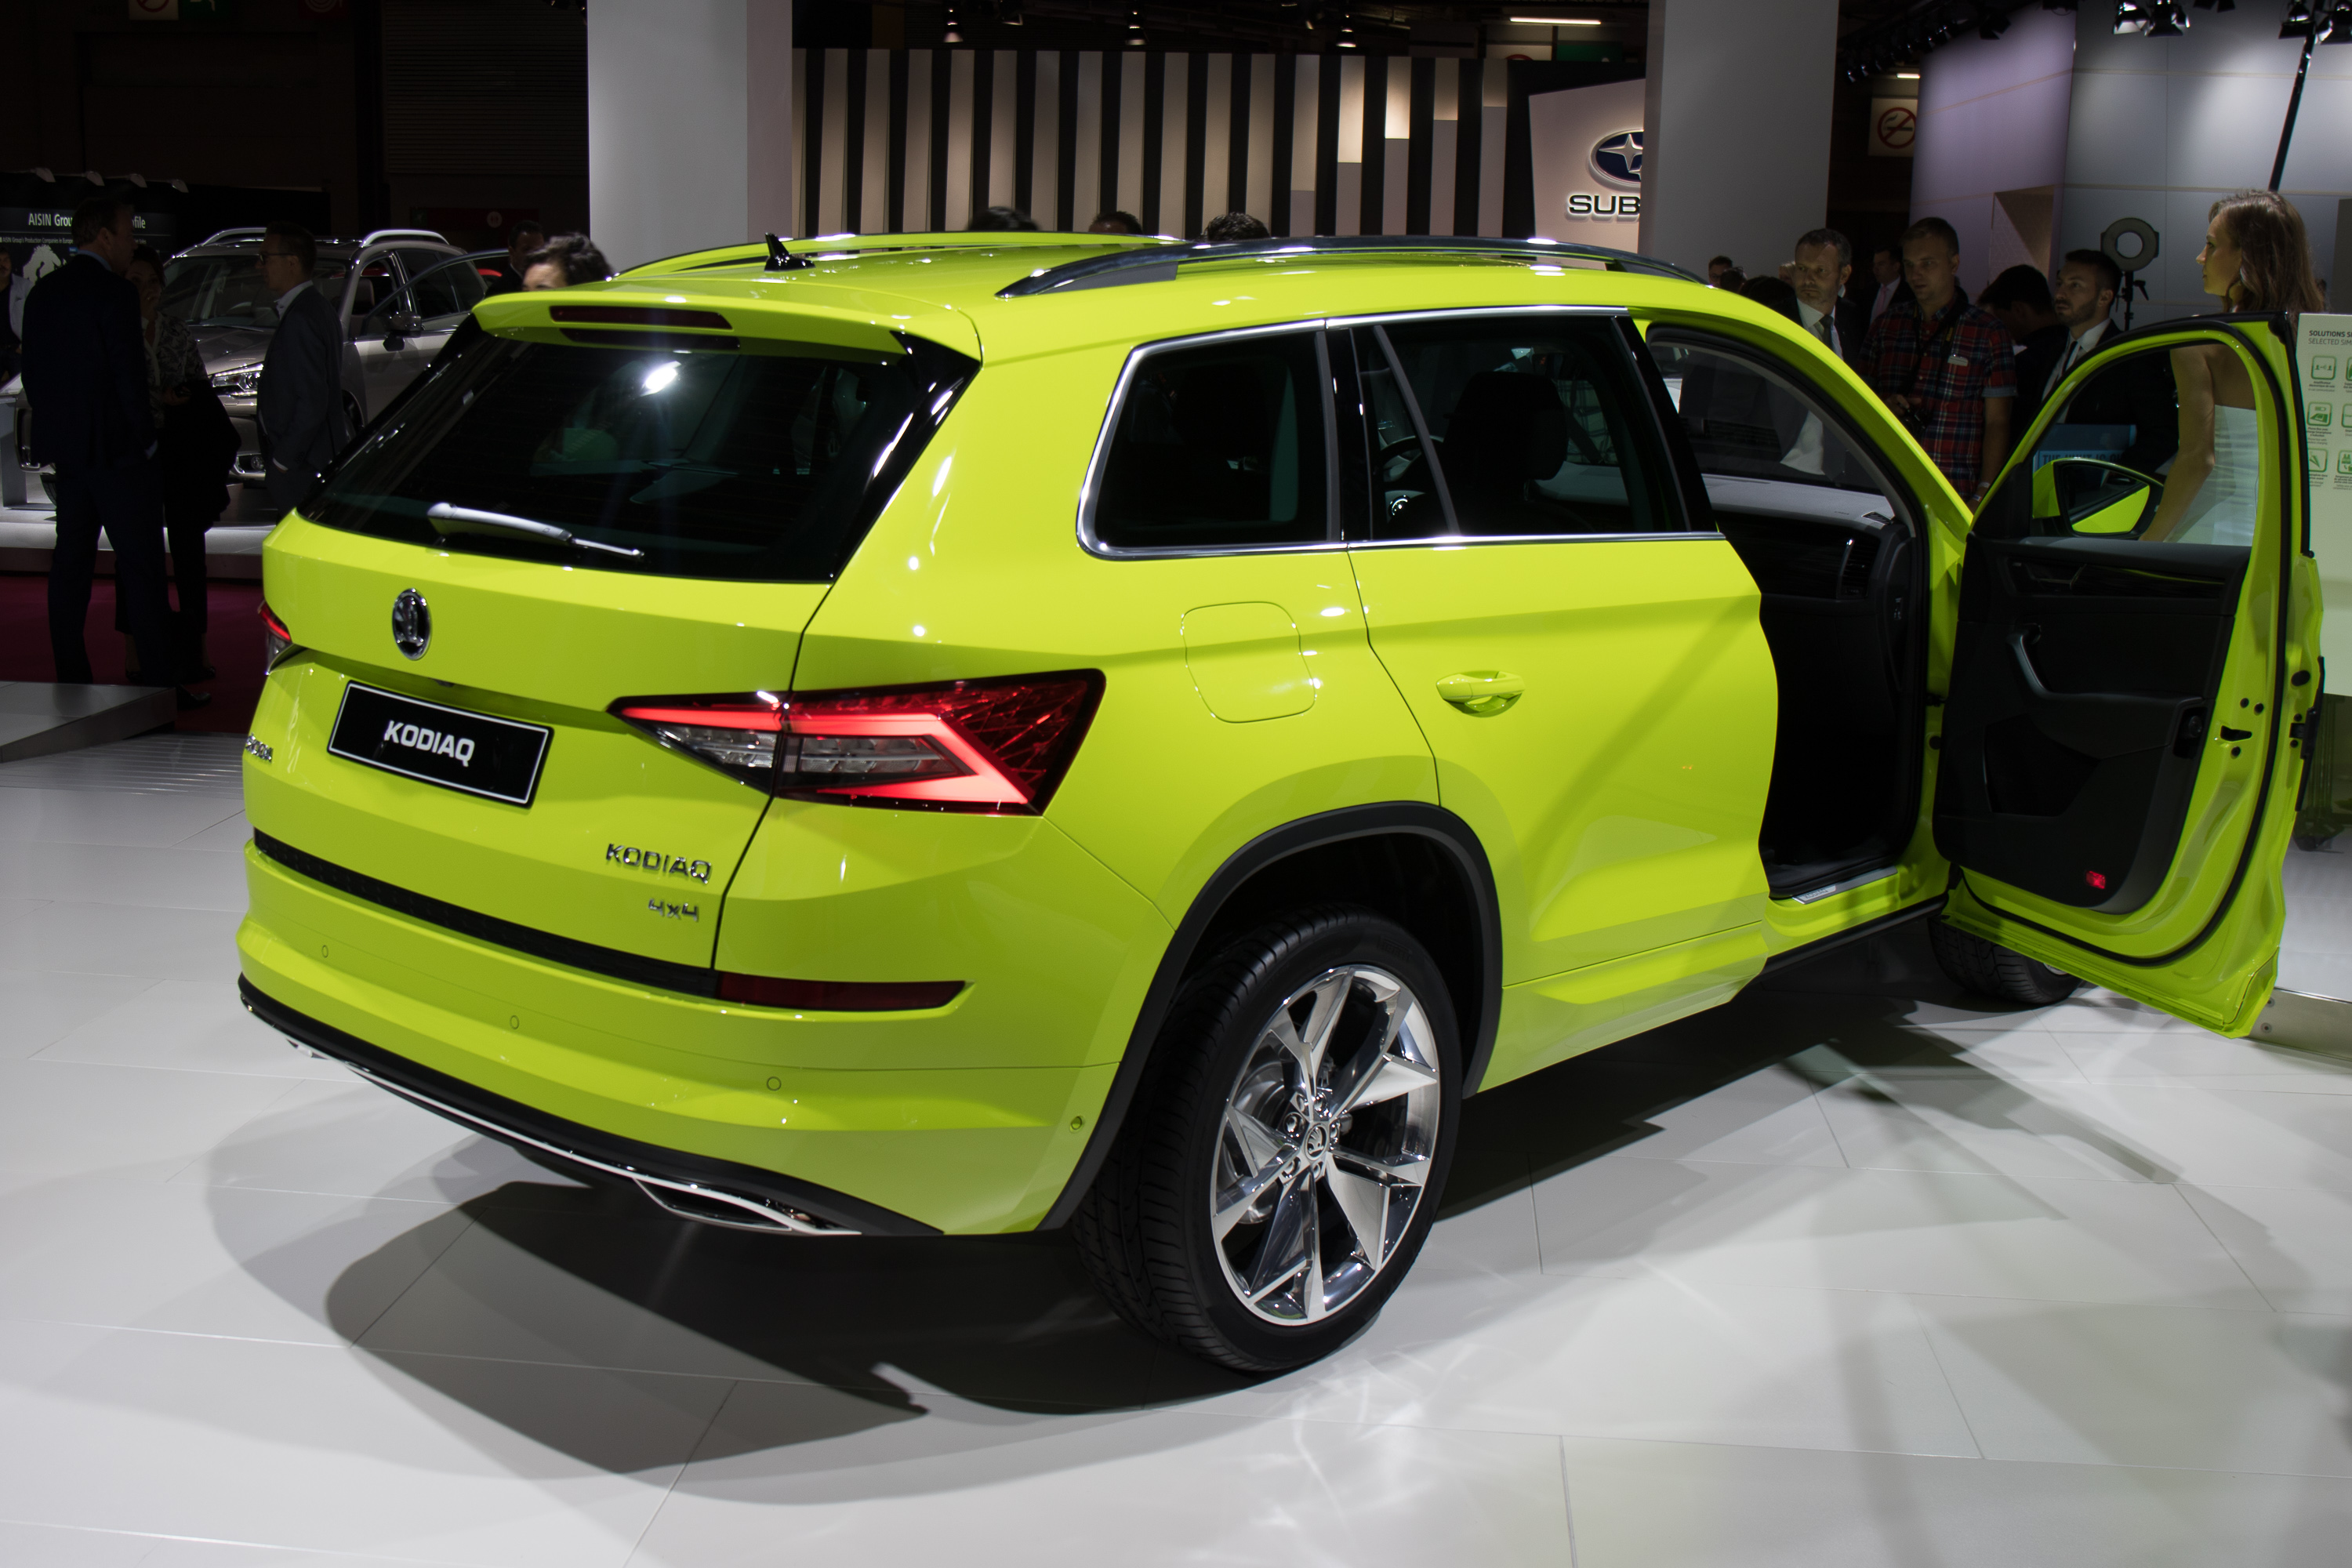 2017 skoda kodiaq seven seat suv revealed australian launch due next year photos 1 of 25. Black Bedroom Furniture Sets. Home Design Ideas